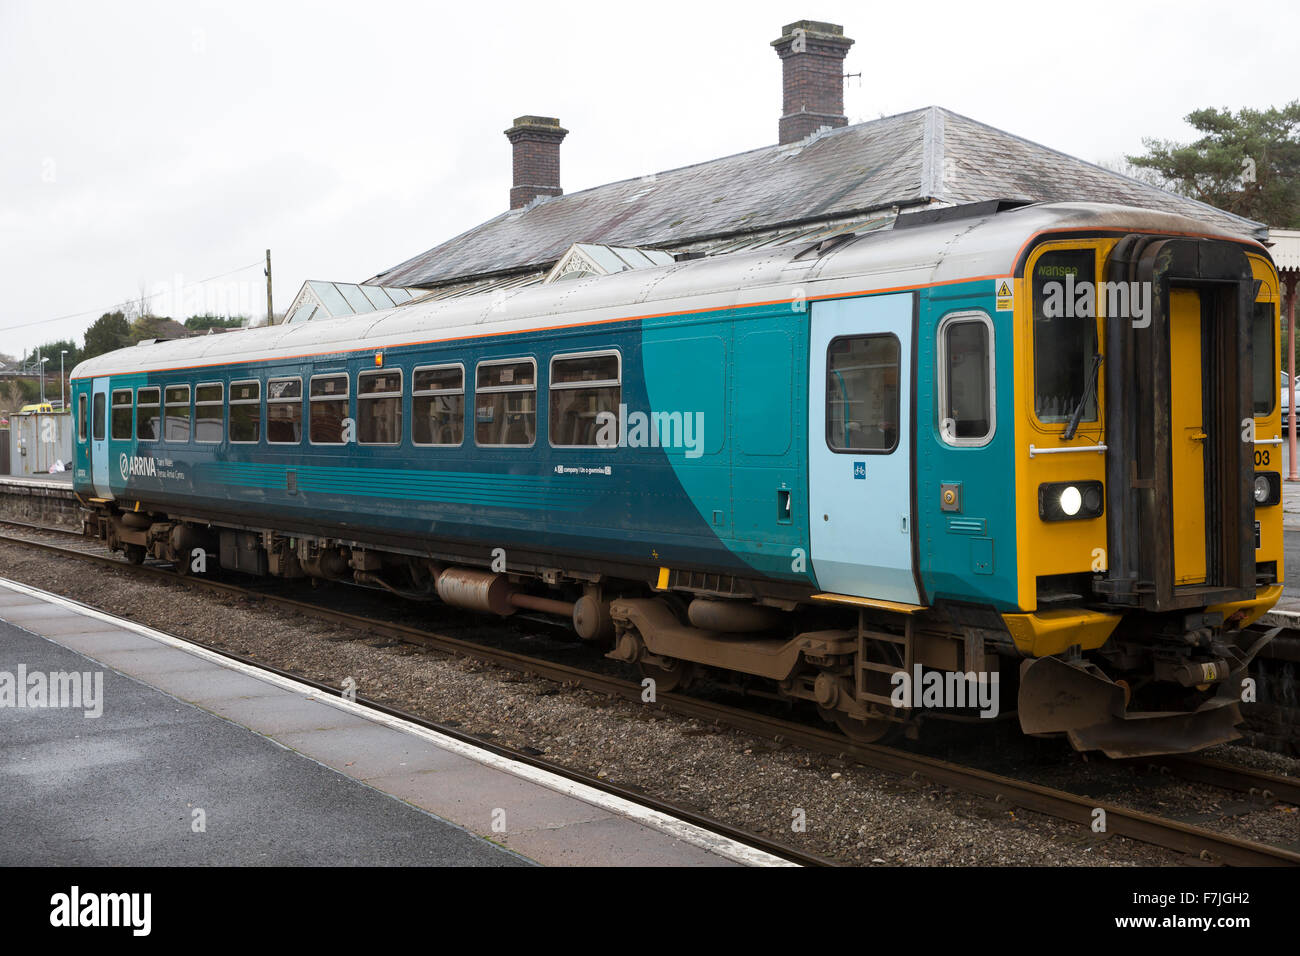 Class 153 Super Sprinters are single-coach diesel multiple units converted from two-coaches in Llandrindod Wells - Stock Image